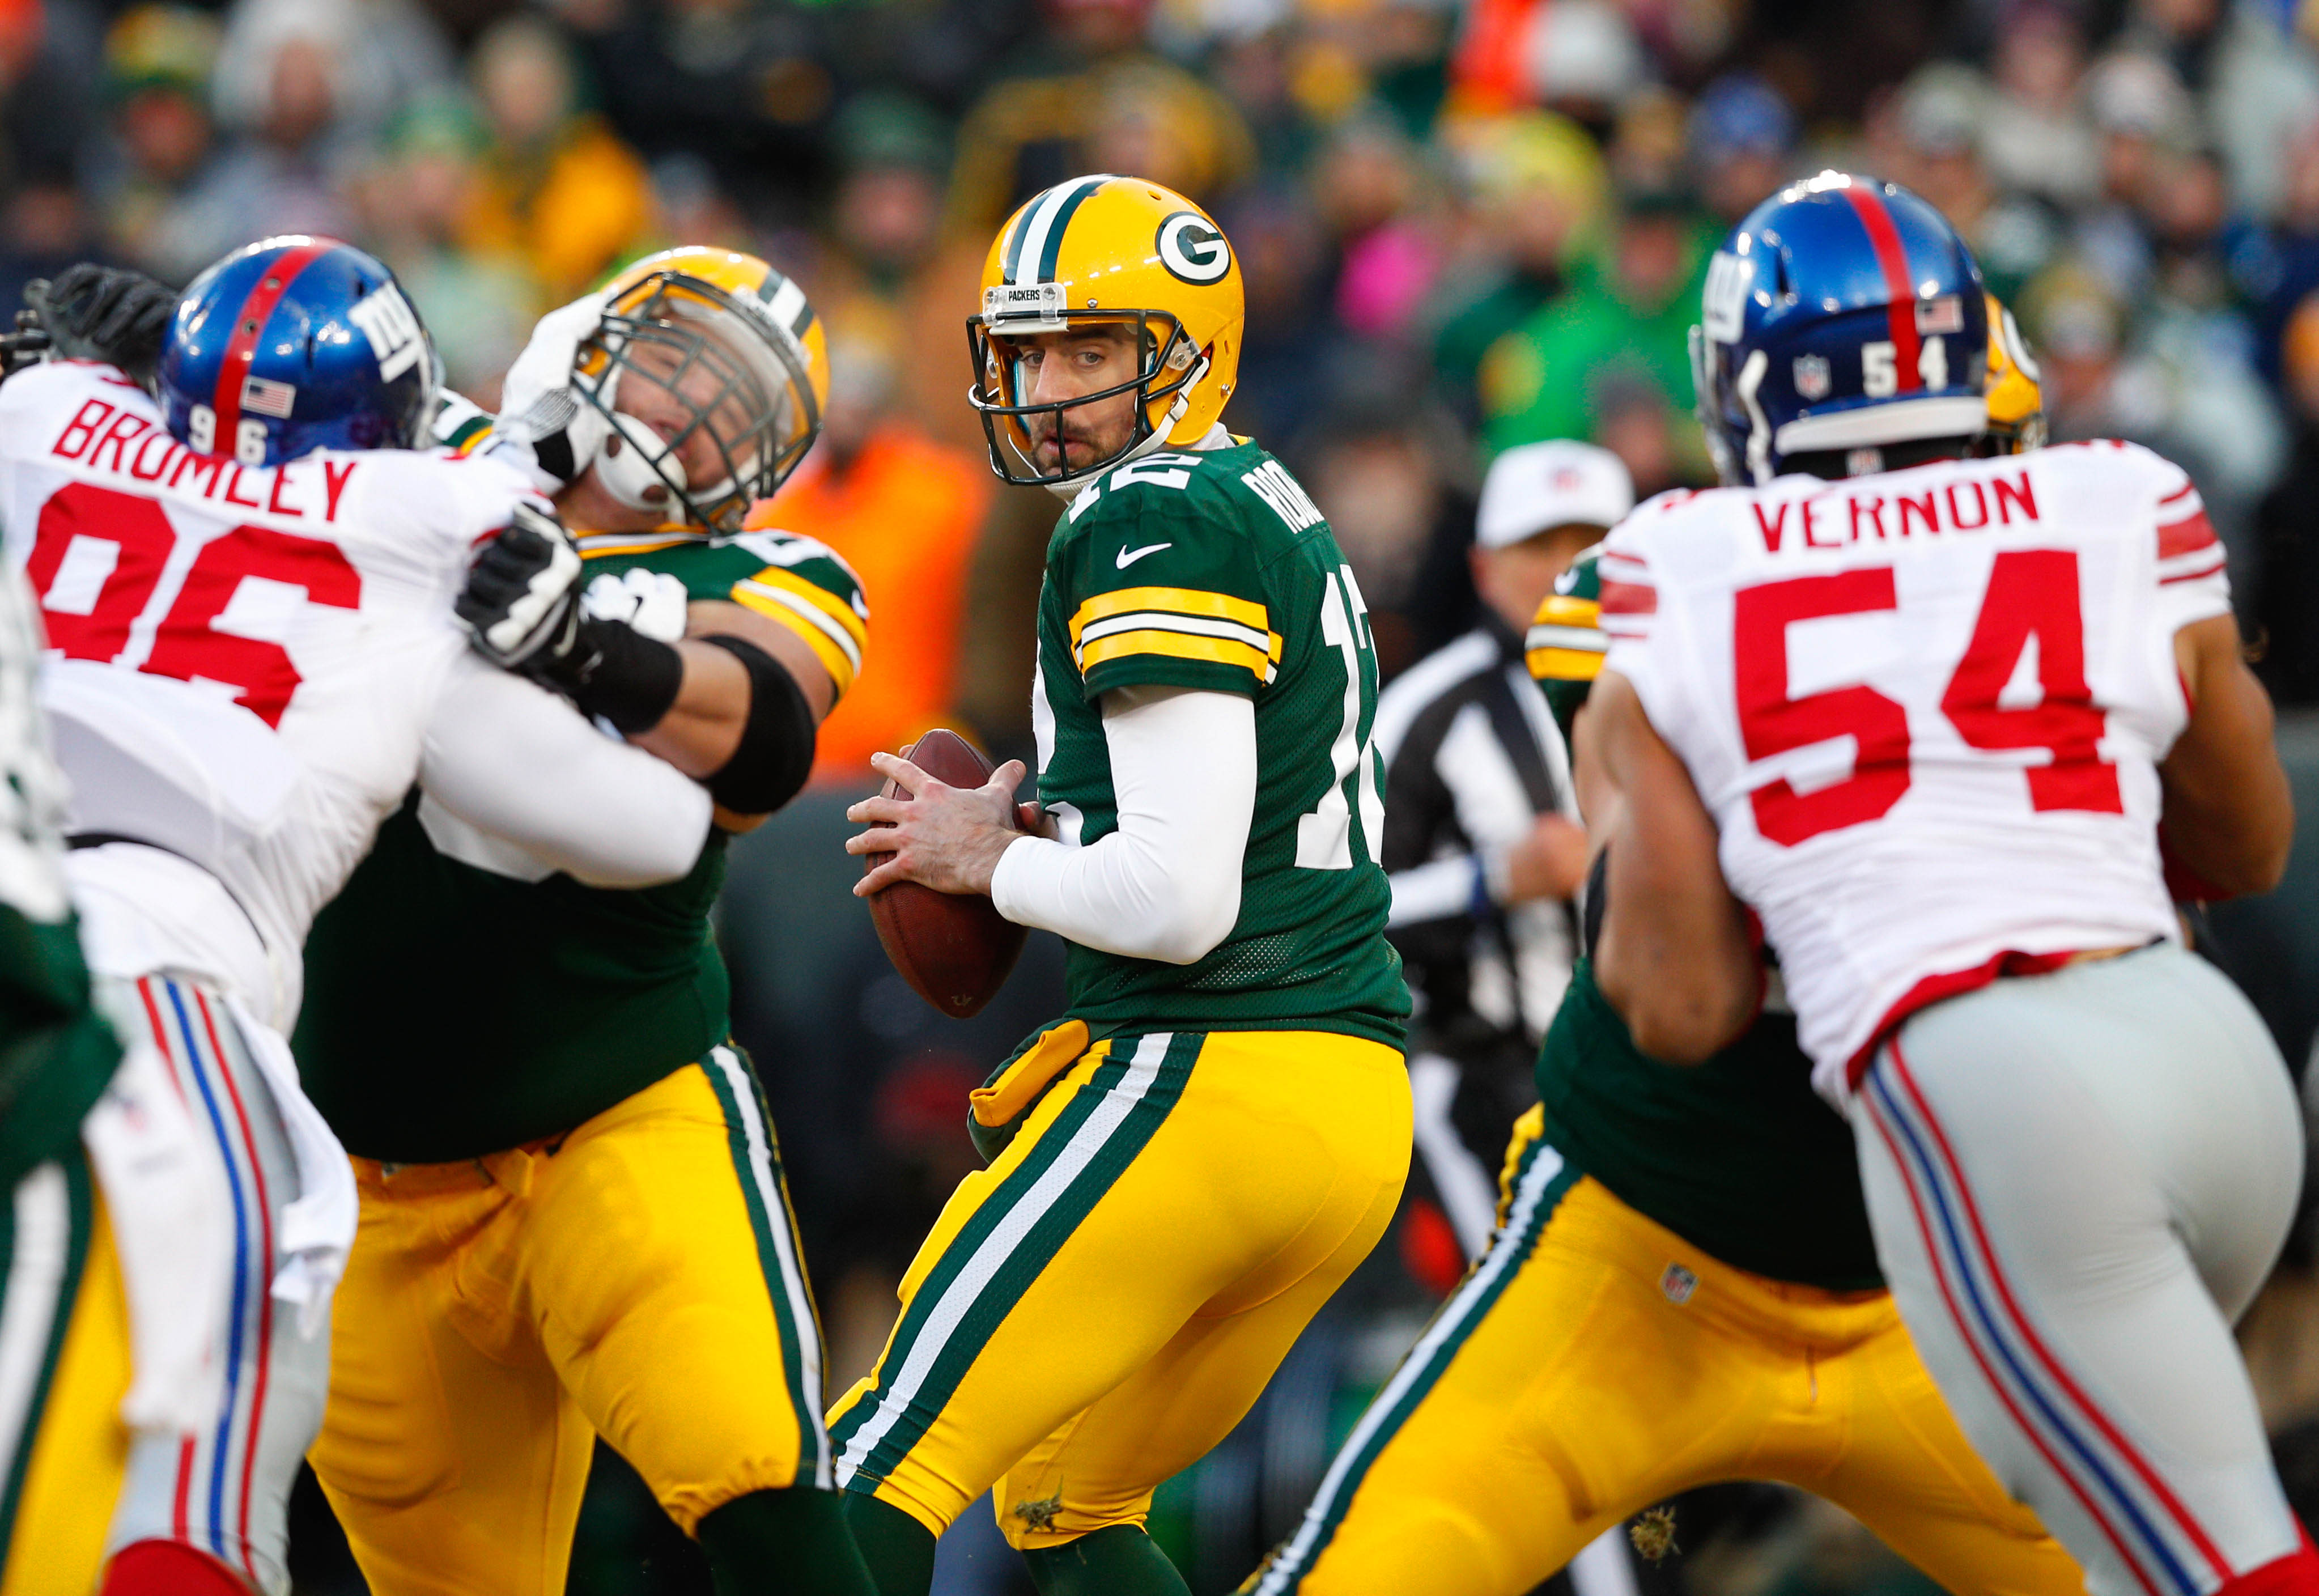 Jan 8, 2017; Green Bay, WI, USA; Green Bay Packers quarterback Aaron Rodgers (12) during the game against the New York Giants at Lambeau Field. Mandatory Credit: Jeff Hanisch-USA TODAY Sports